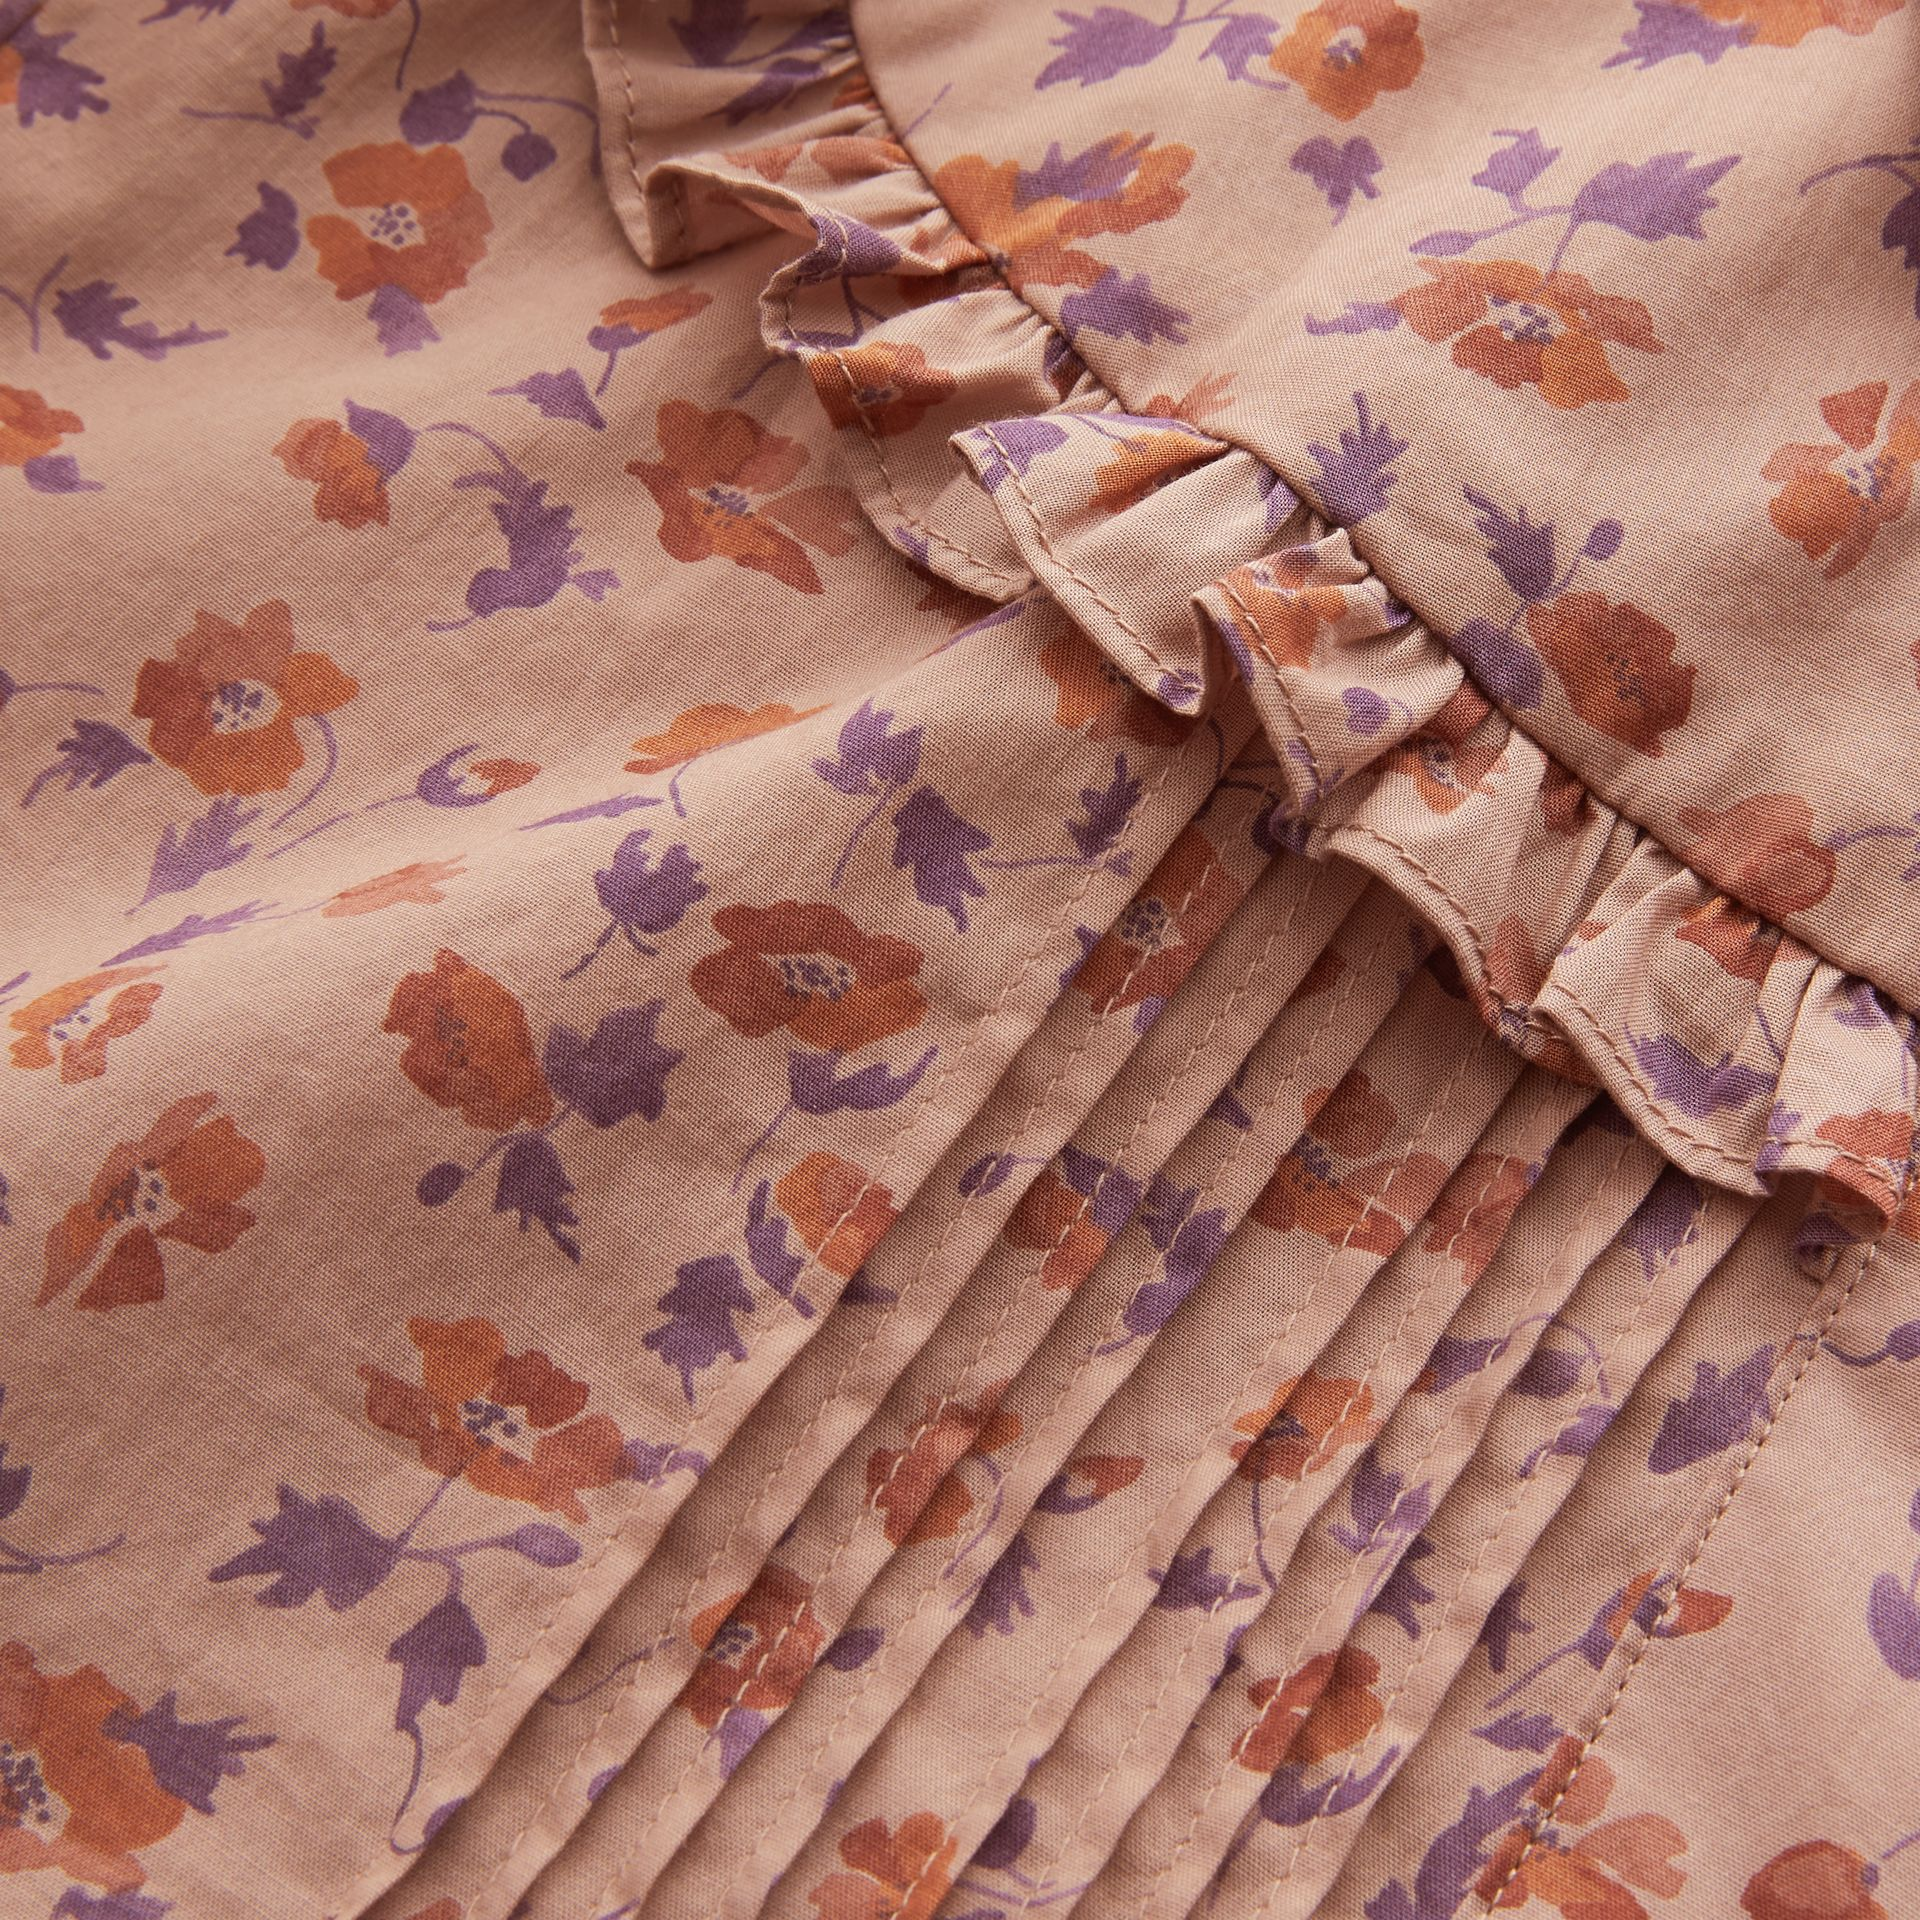 Ruffle Yoke Floral Print Cotton Shirt in Light Copper - Women | Burberry Canada - gallery image 2